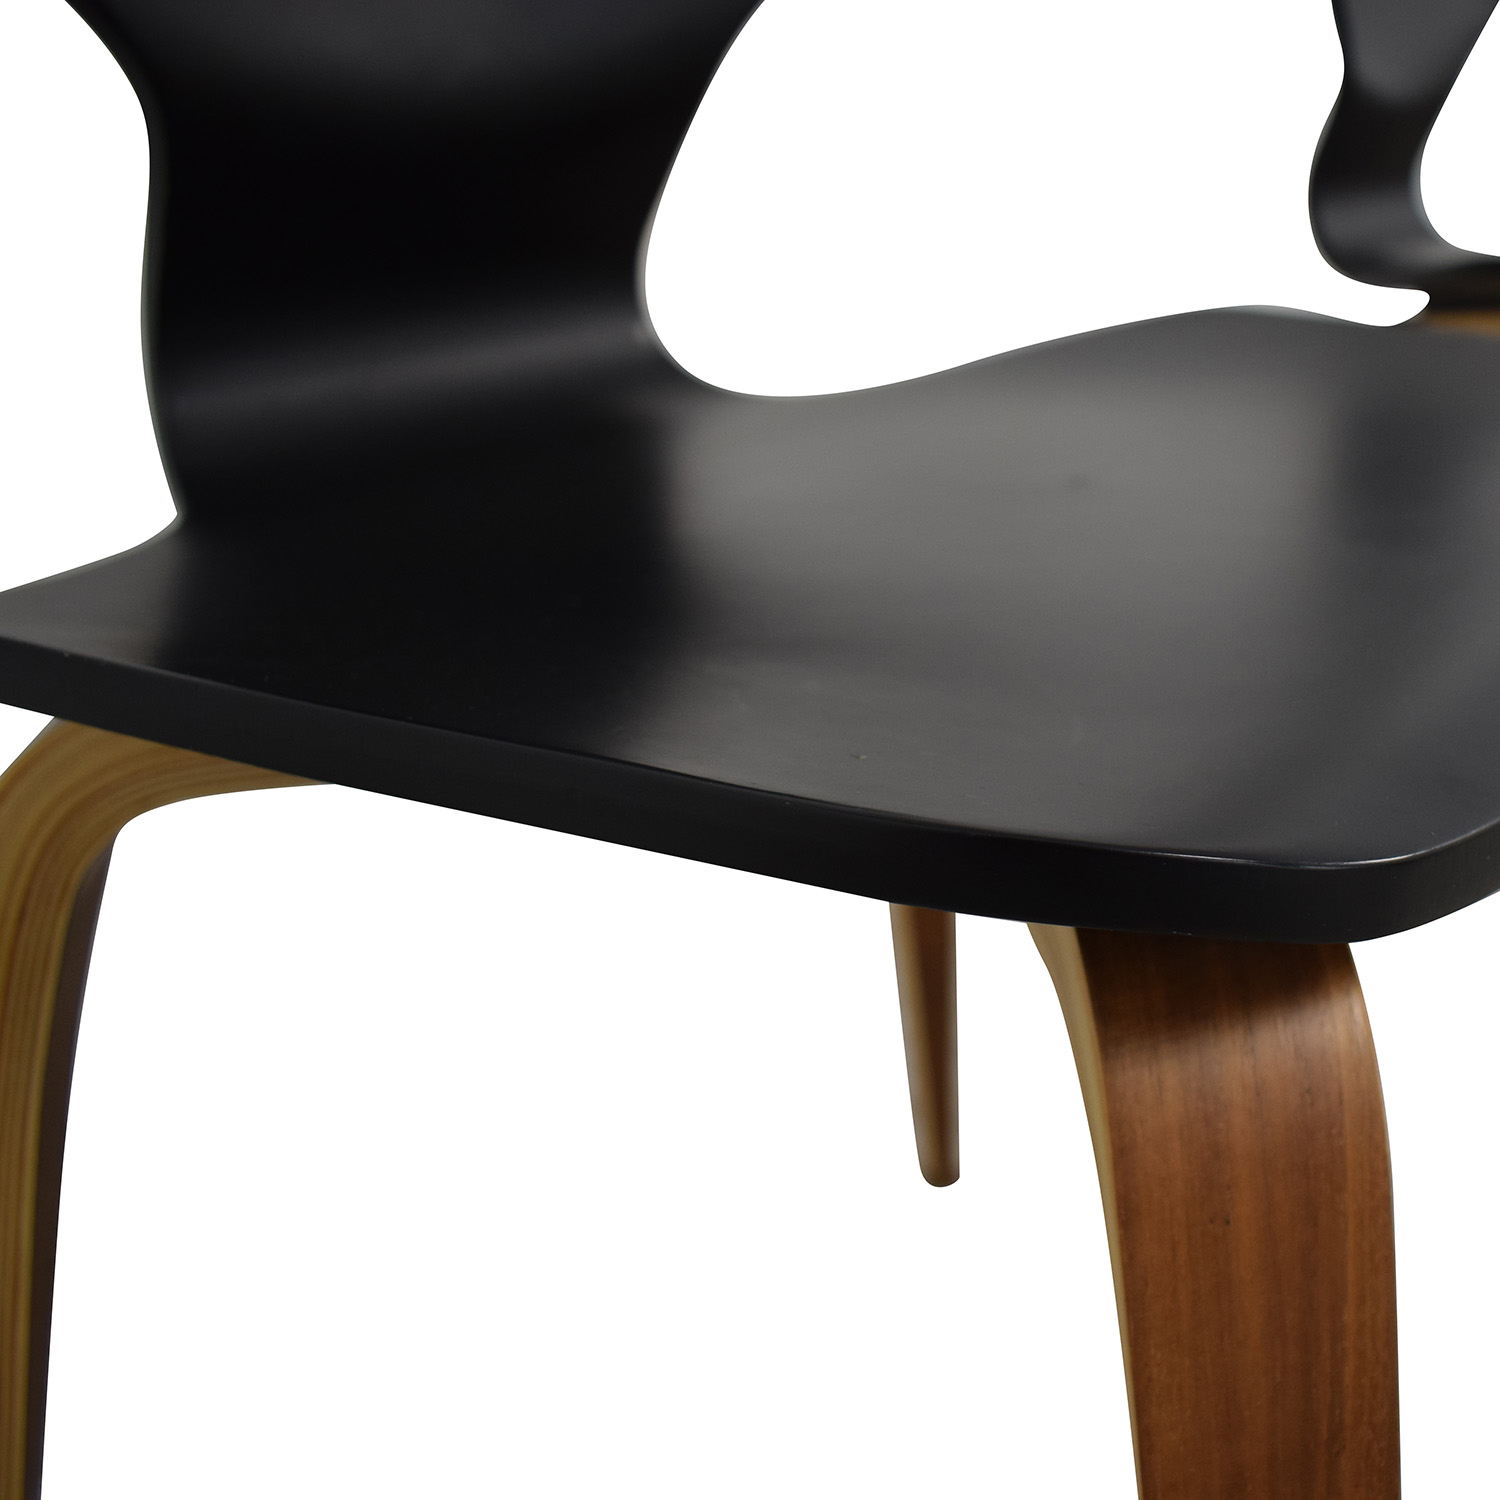 Room & Board Room & Board Pike Chairs Black